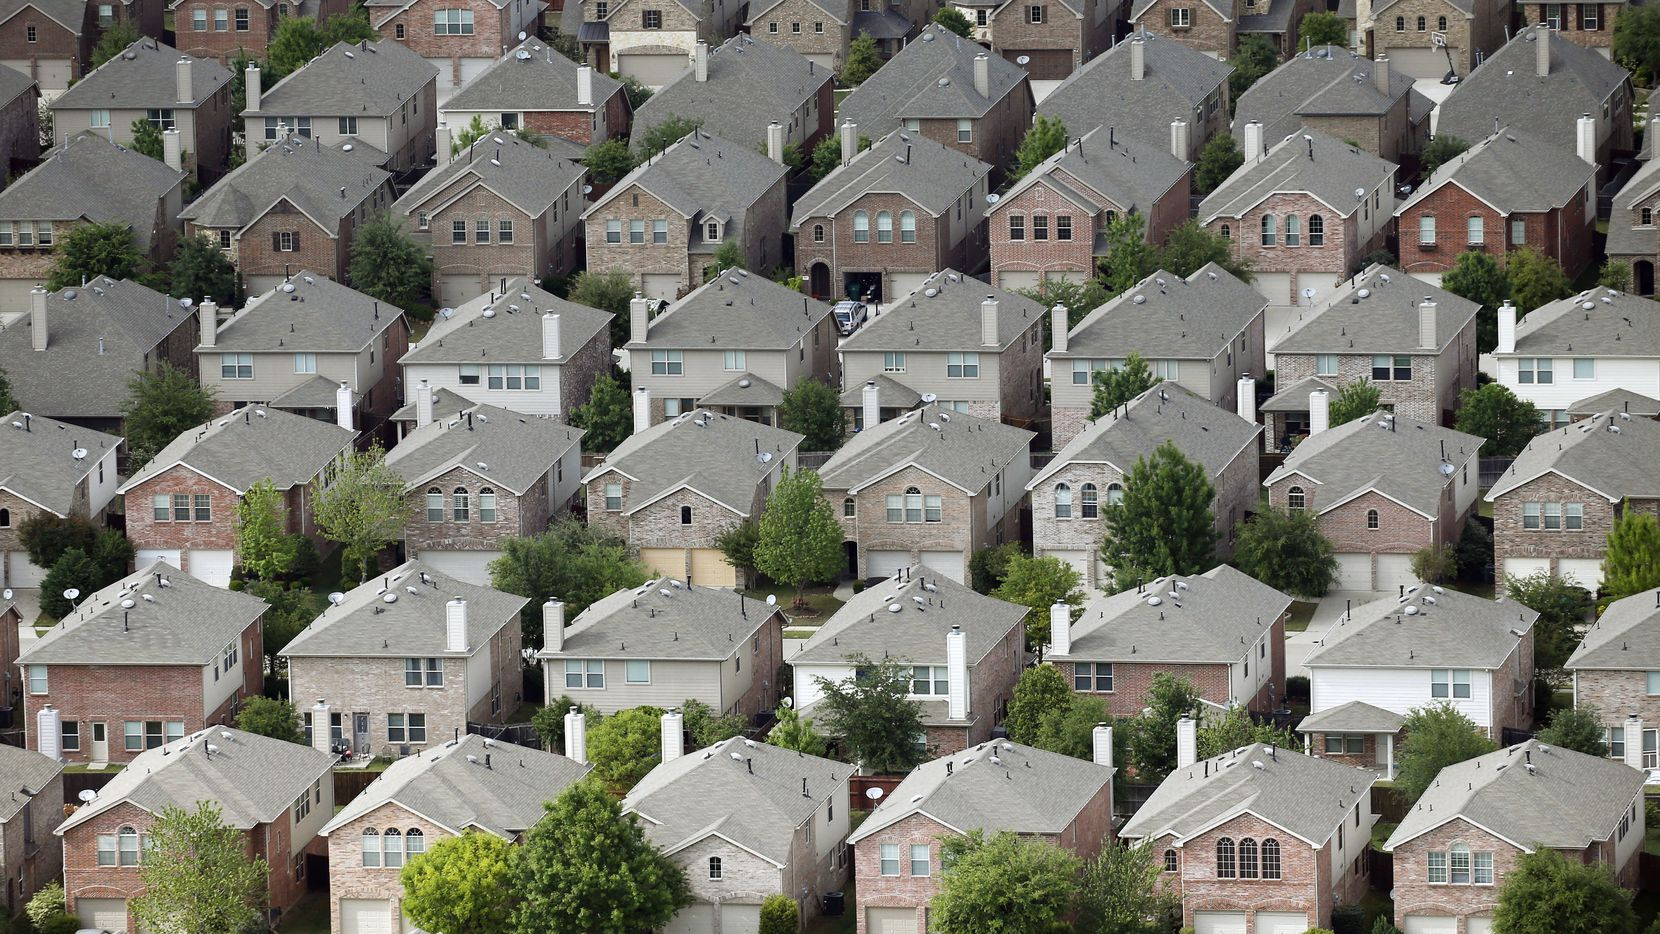 D-FW real estate searches are increasing.